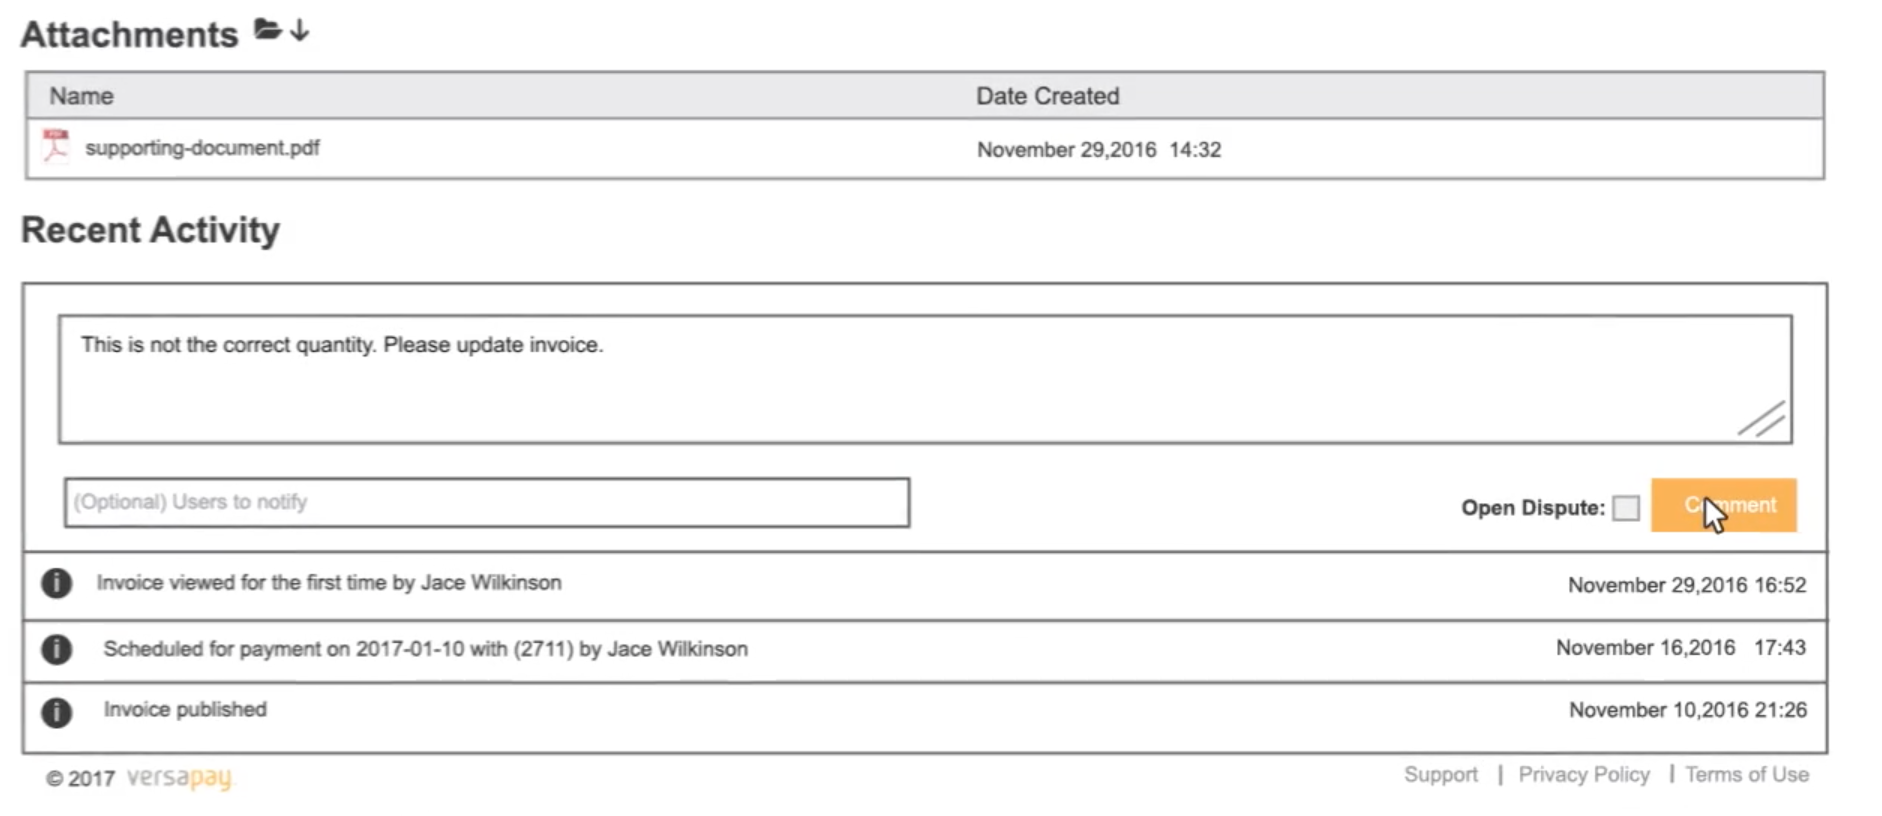 Attach supporting documents and track recent invoice activity